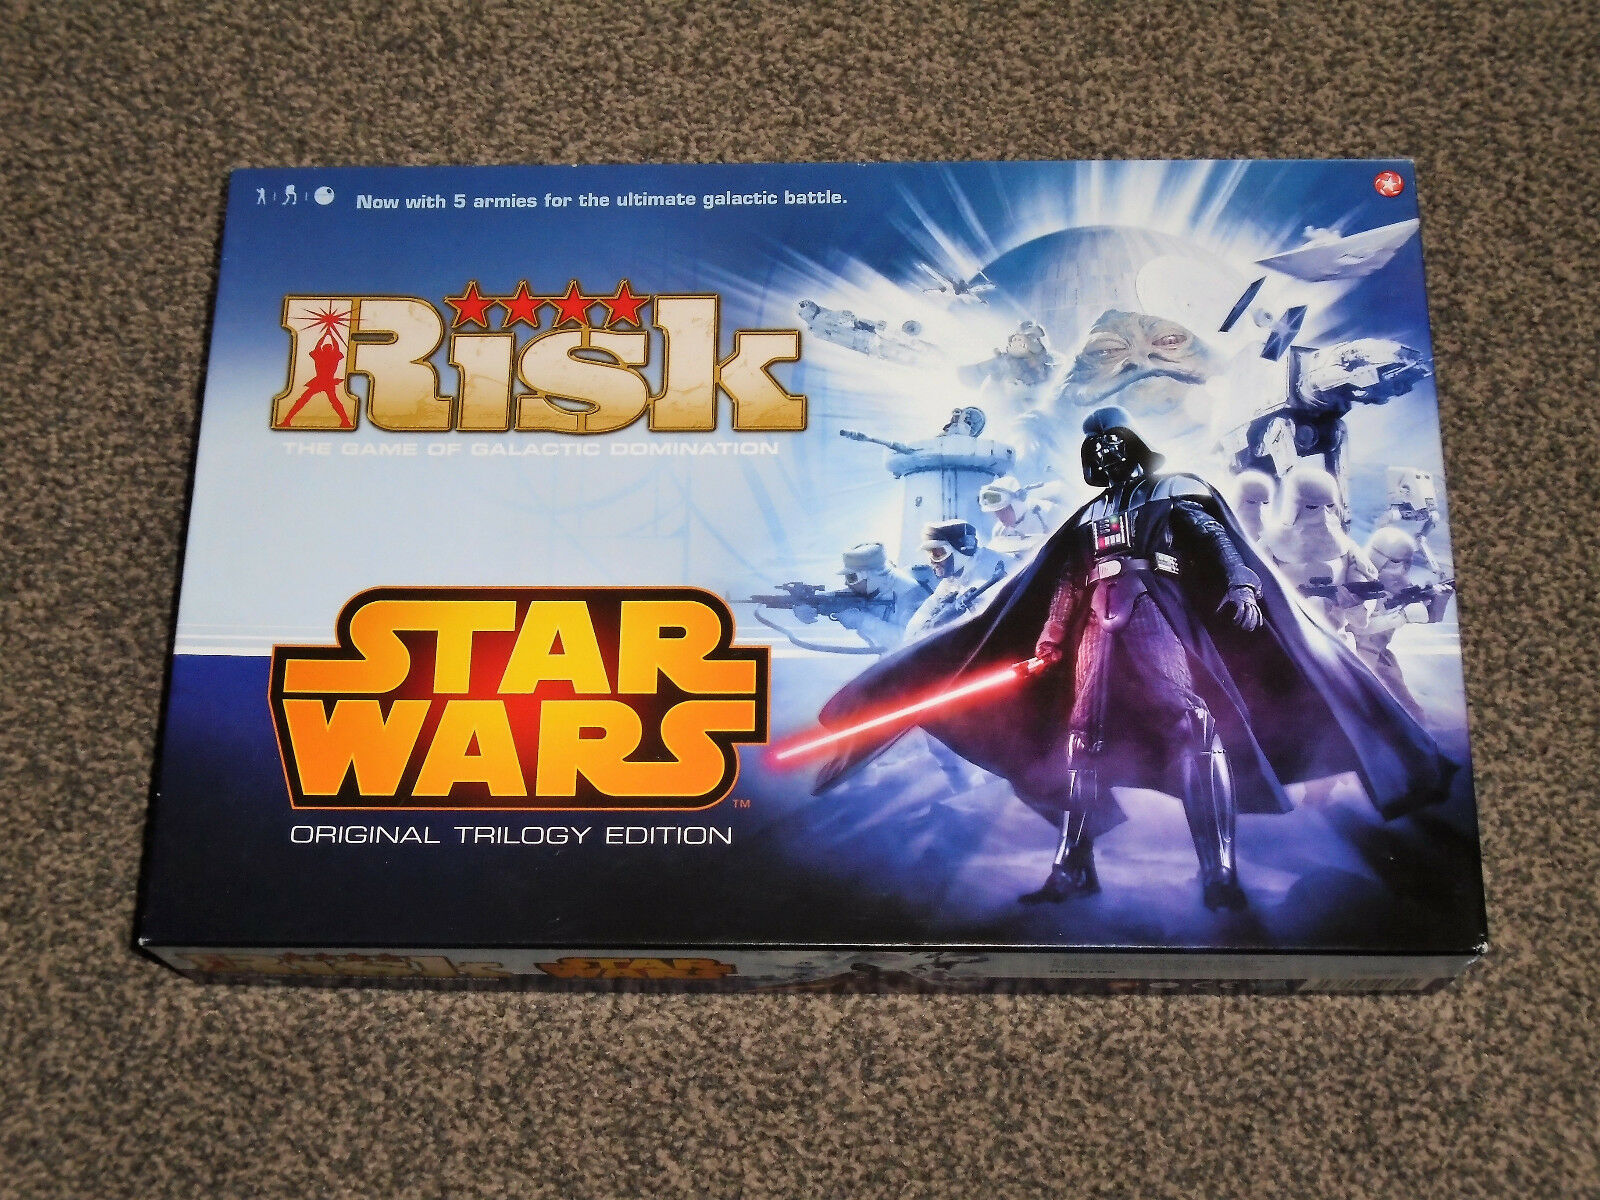 STAR WARS RISK GAME   RARE ORIGINAL TRILOGY 2013 EDITION - IN VGC (FREE UK P&P)